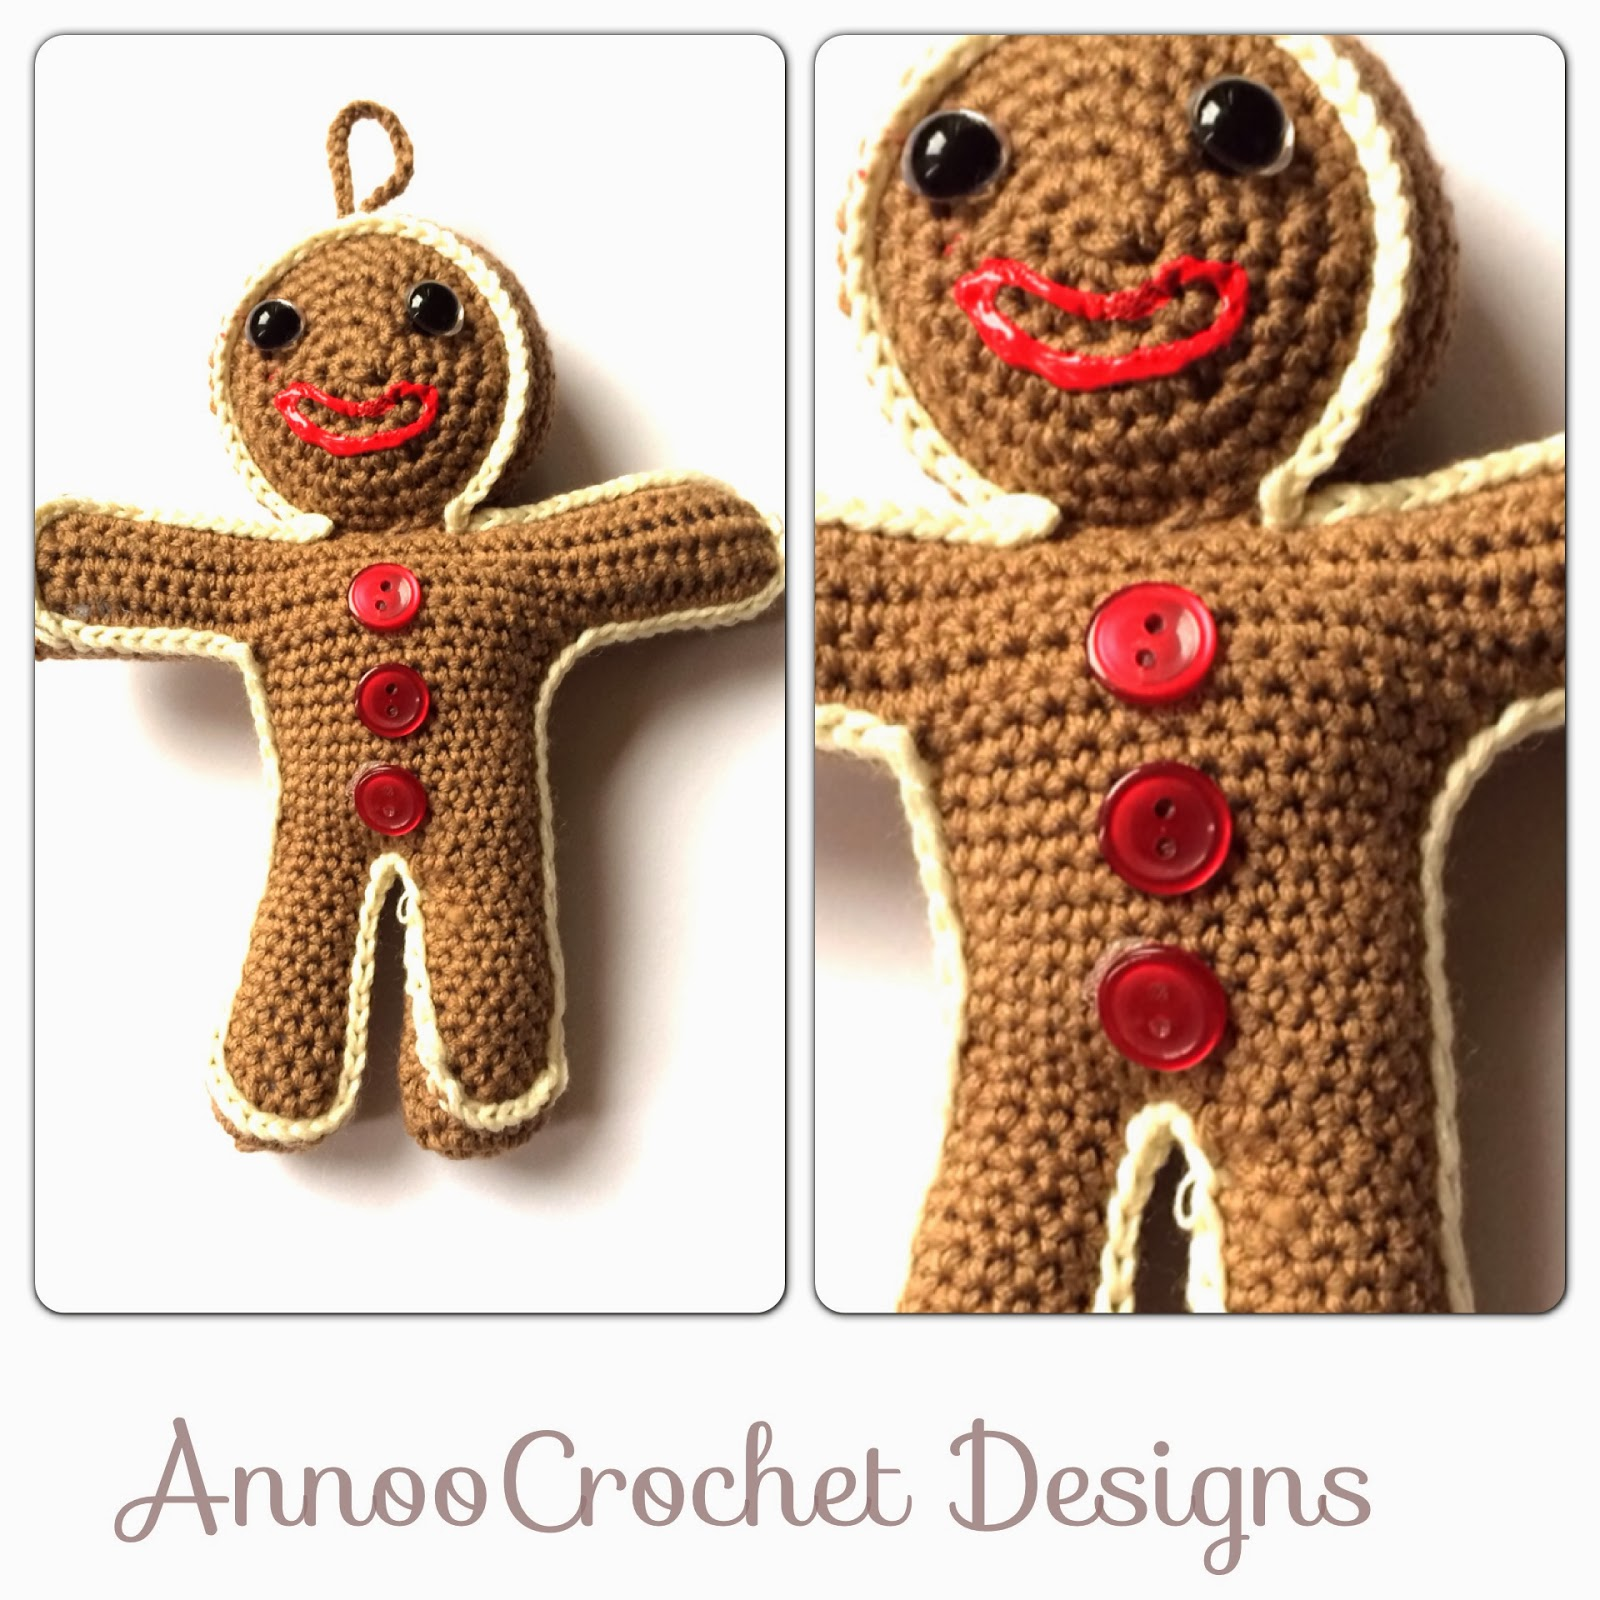 Christmas Gingerbread Man Knitting Pattern : Search Results for ?Amigurumi Christmas New Free Patterns?   Calendar 2015